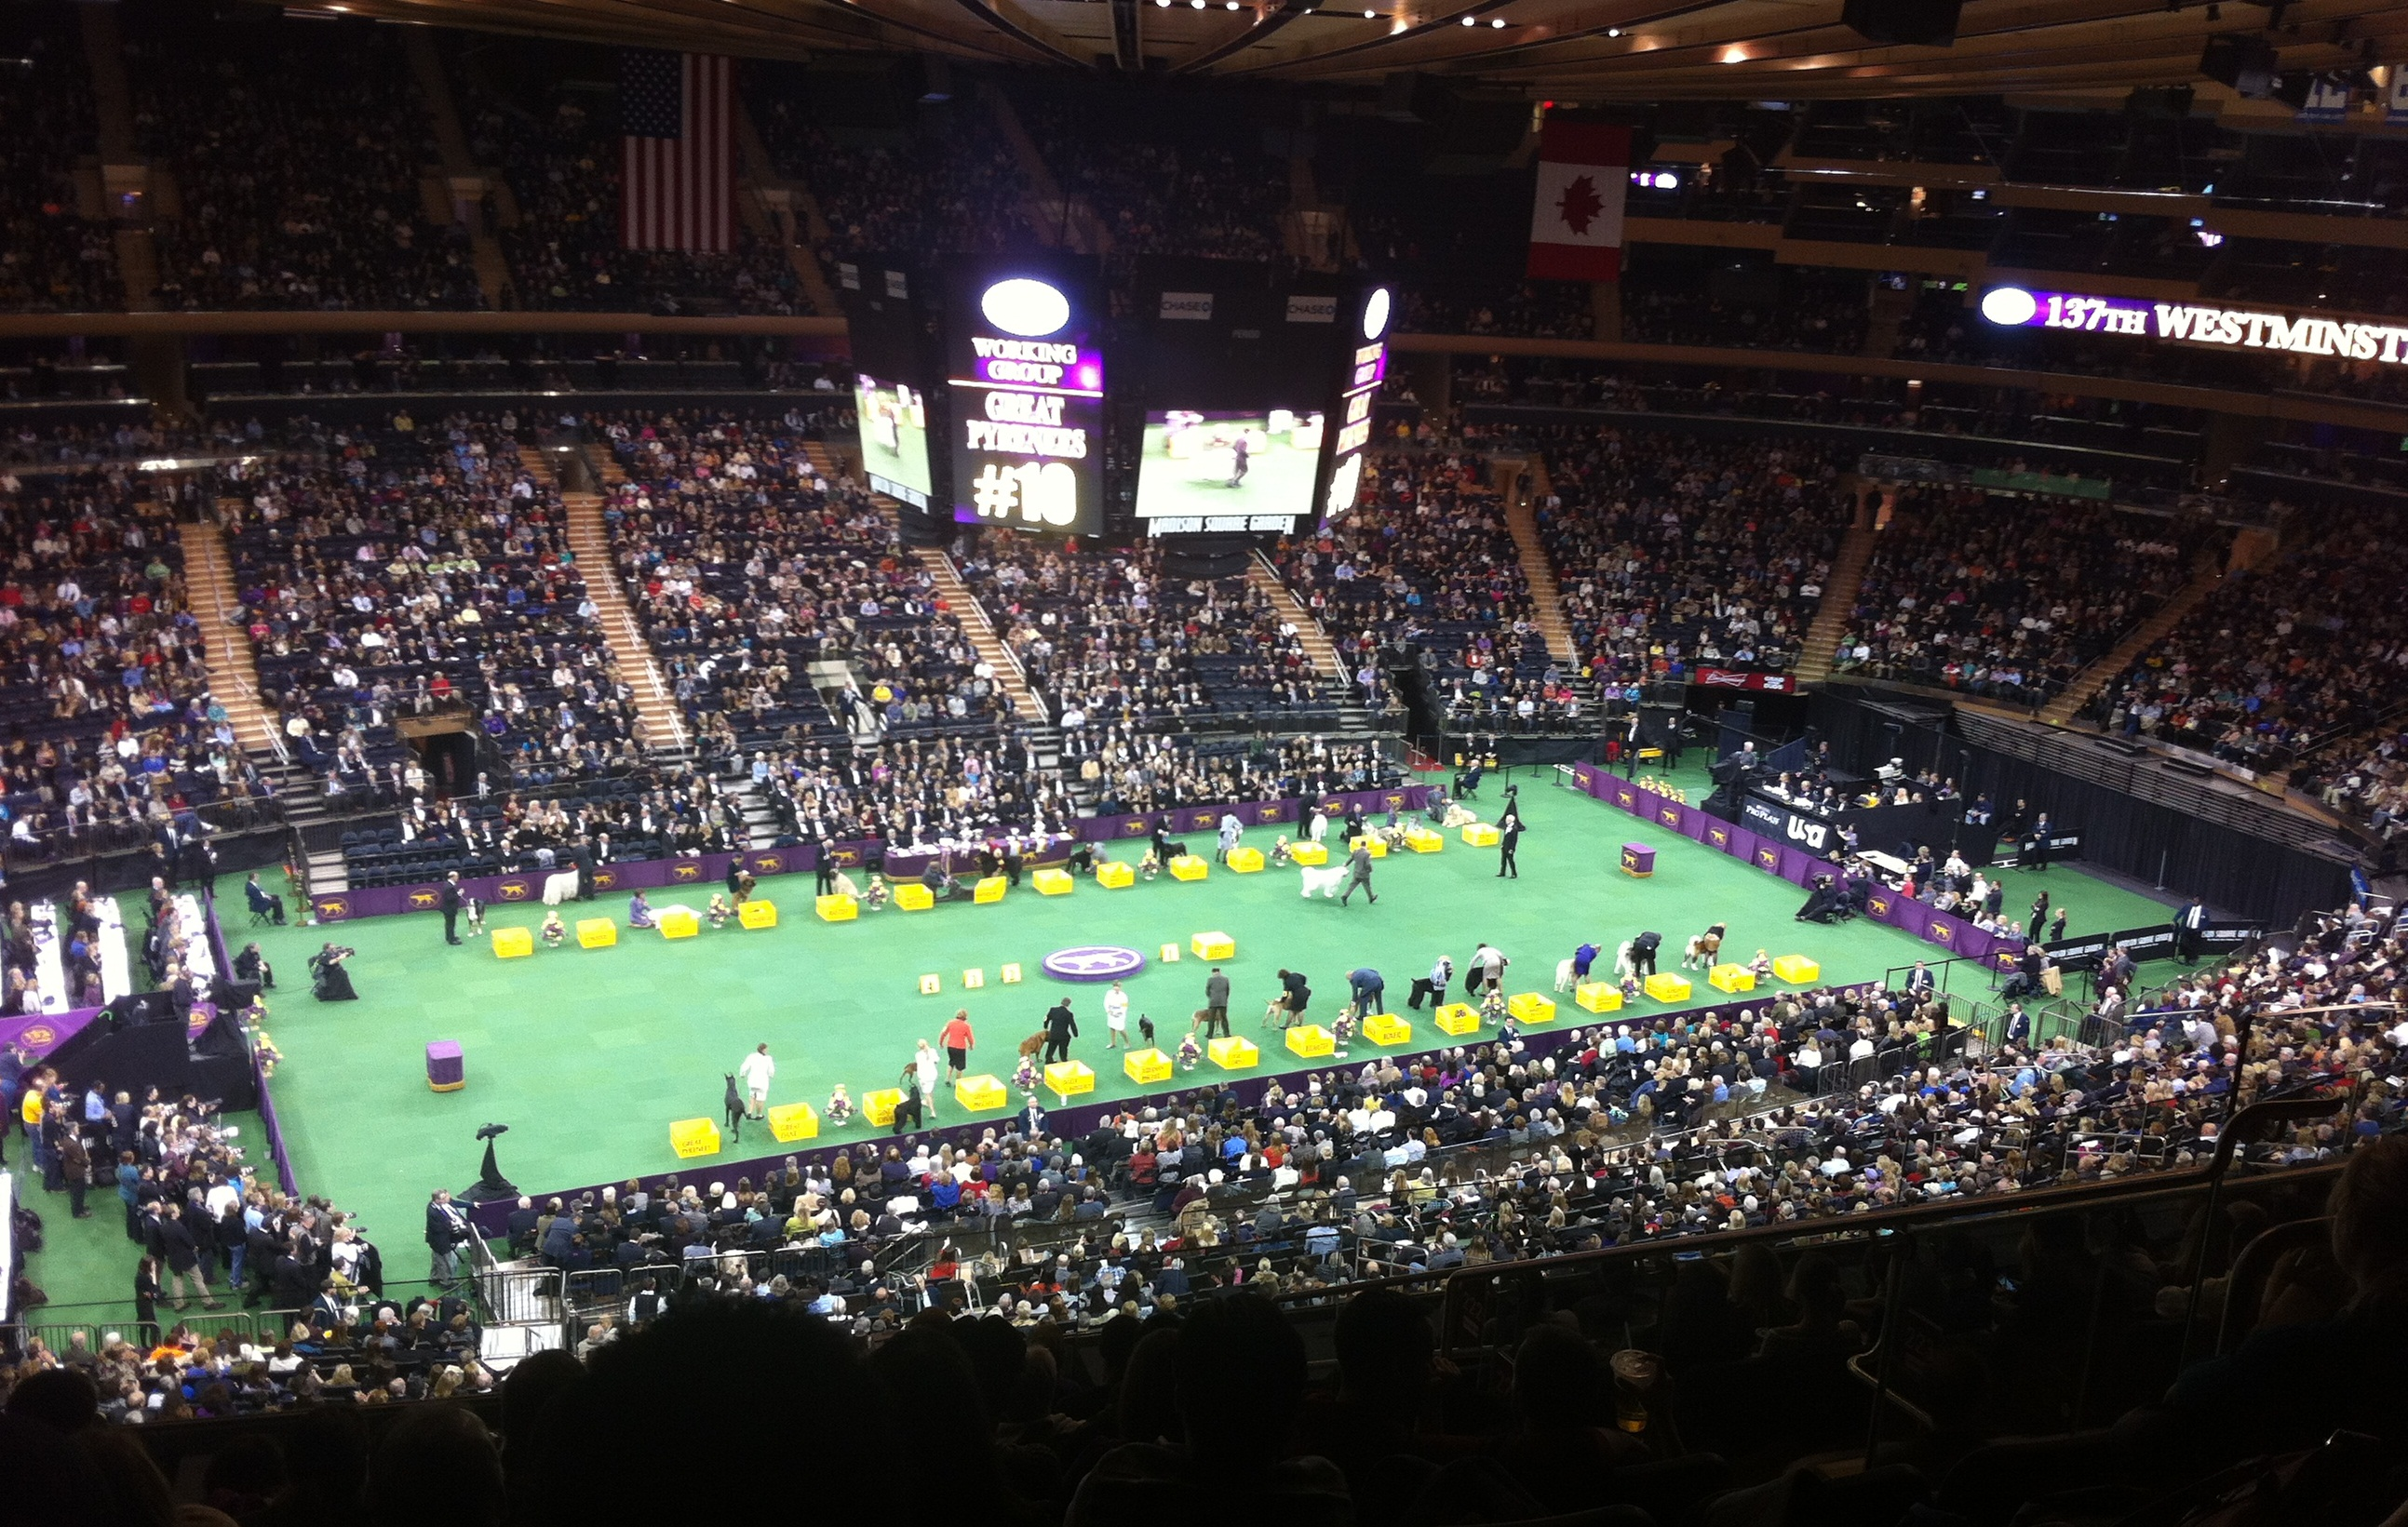 Westminster Dog Show In Madison Square Garden Garden Ftempo